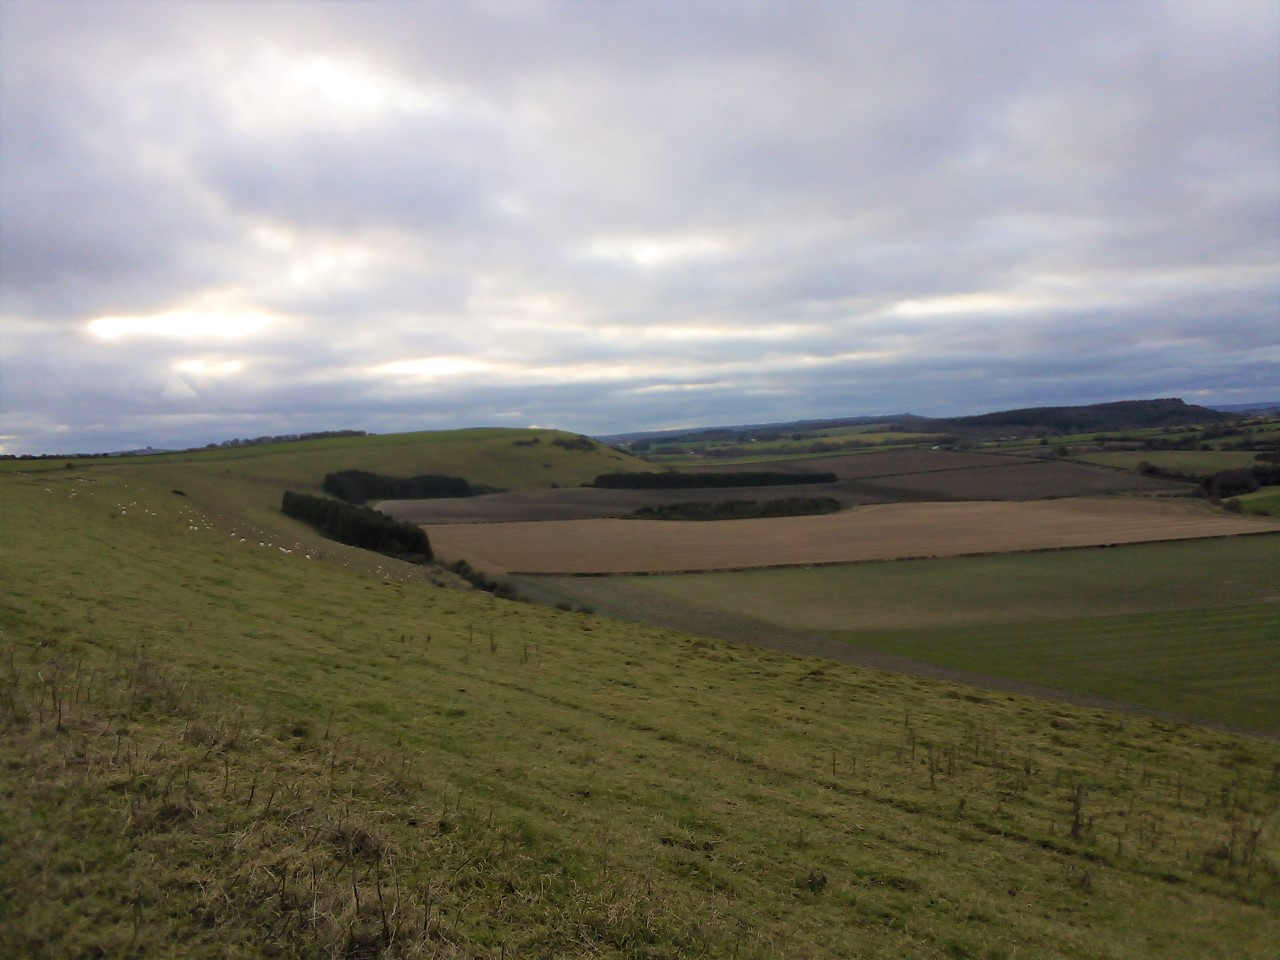 12 Walks of Christmas - Day 5 - Cranborne Chase